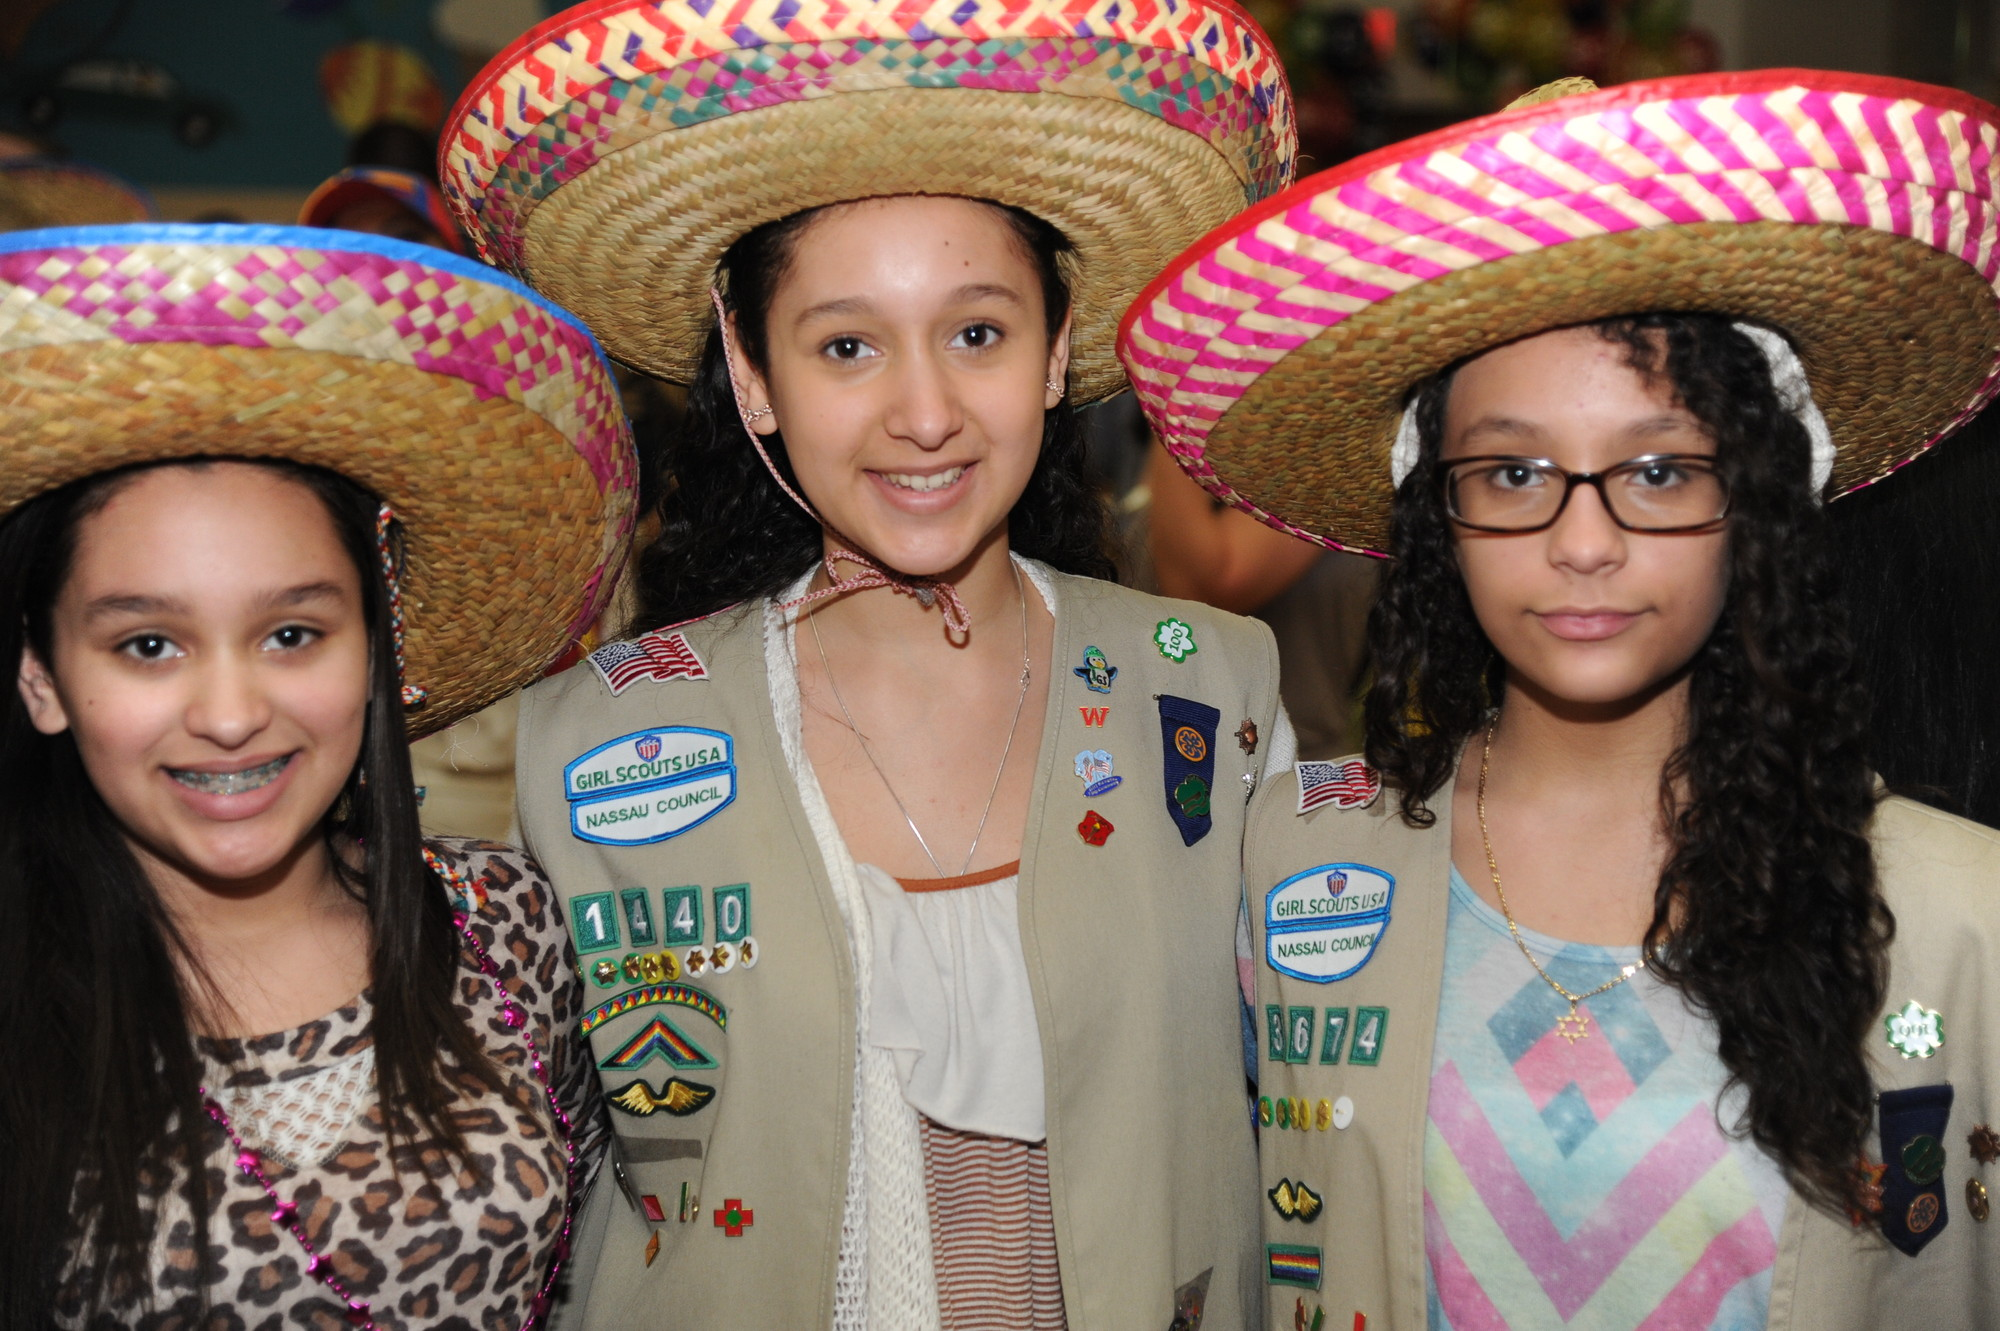 Melina Ramirez, 15, middle, with sisters Sofie, 13, left, and Gillian, 12, showed pride in their Latin roots.